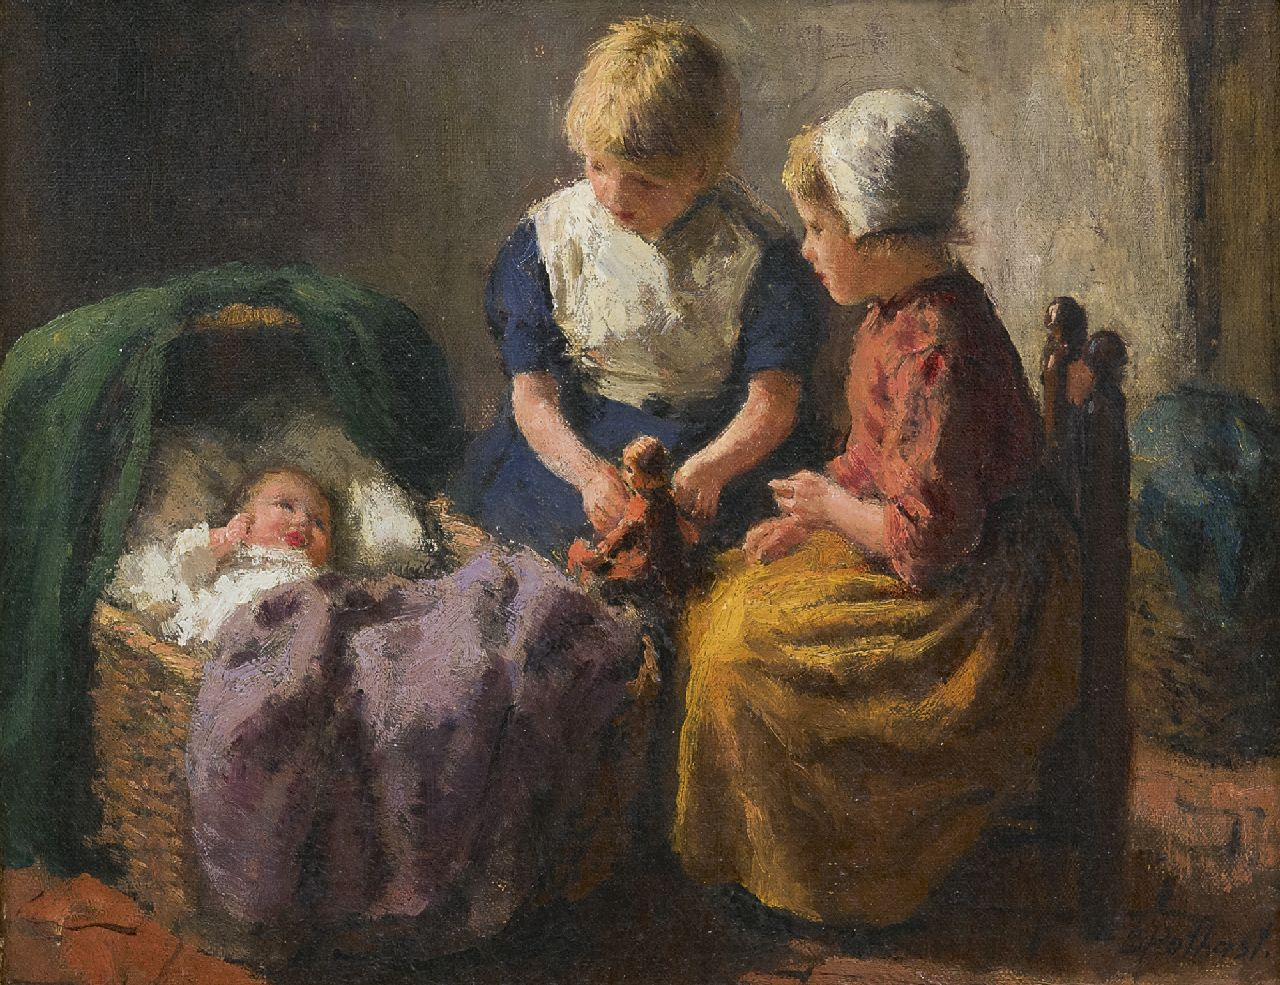 Pothast B.J.C.  | 'Bernard' Jean Corneille Pothast, Two girls and a baby, oil on canvas 20.4 x 25.7 cm, signed l.r.